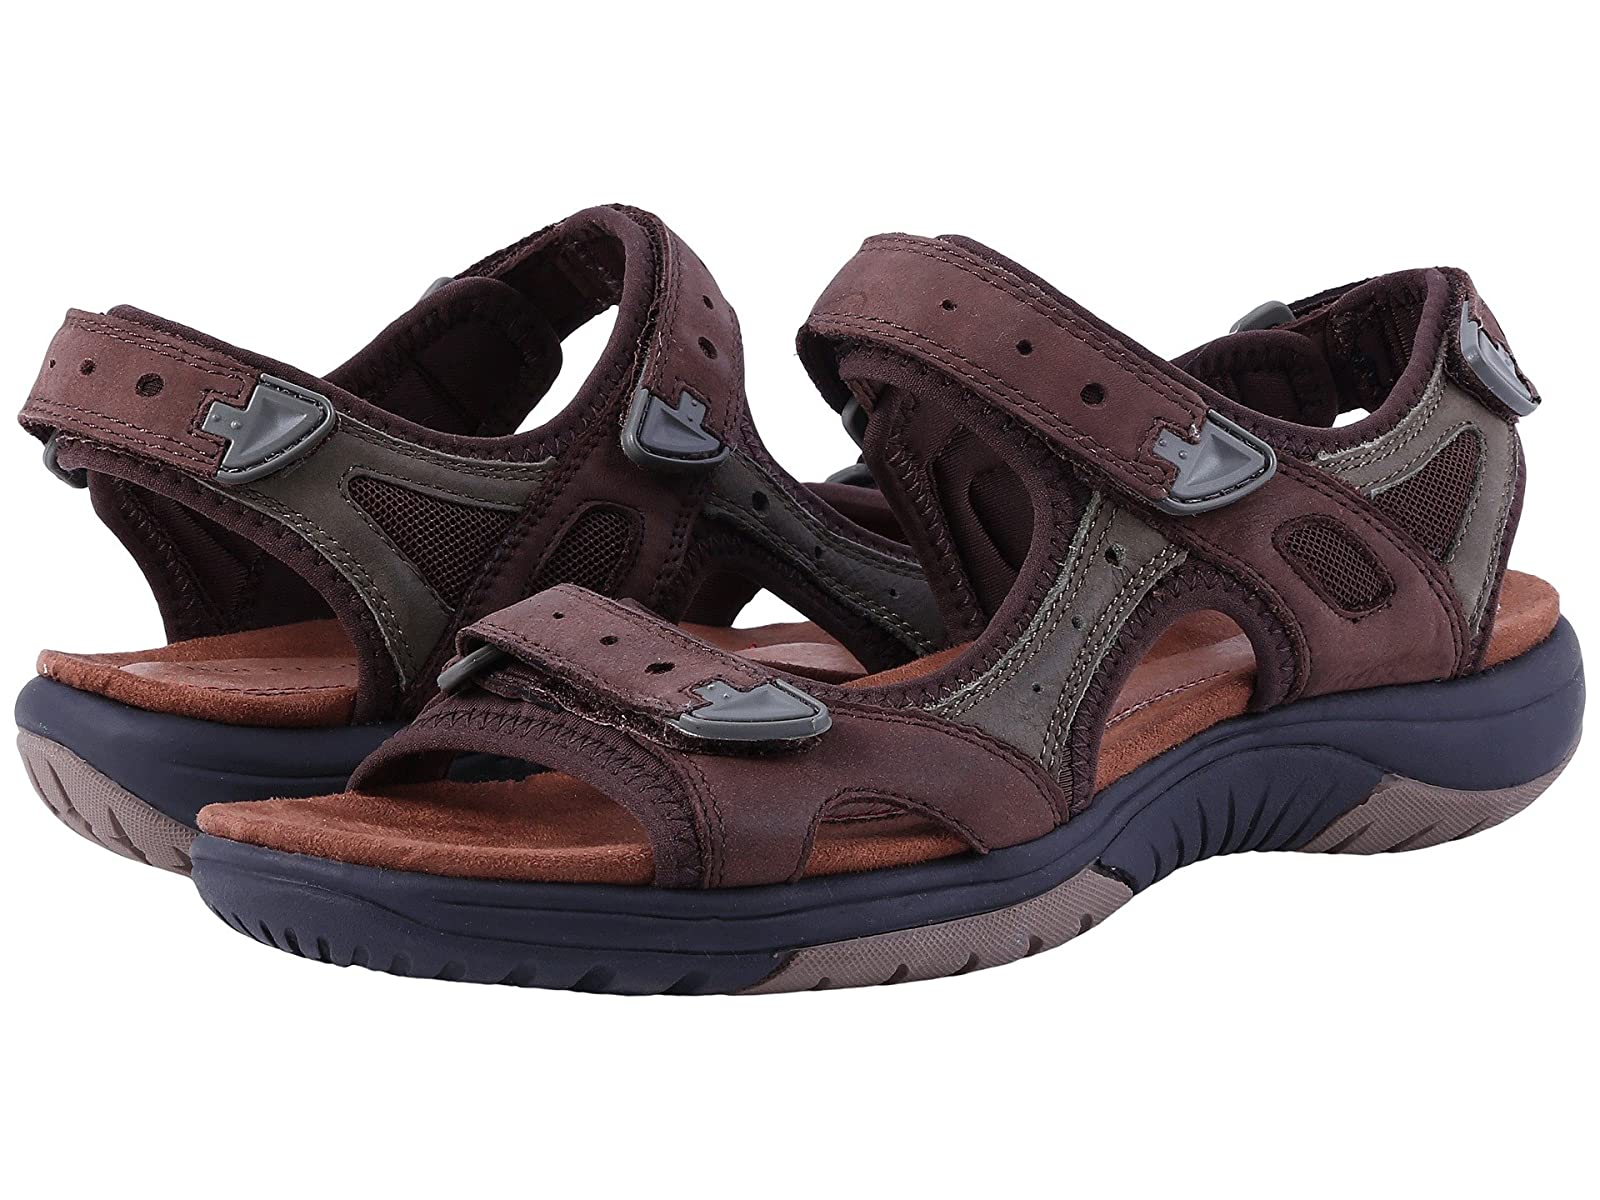 Rockport Cobb Hill Collection Cobb Hill FionaAtmospheric grades have affordable shoes